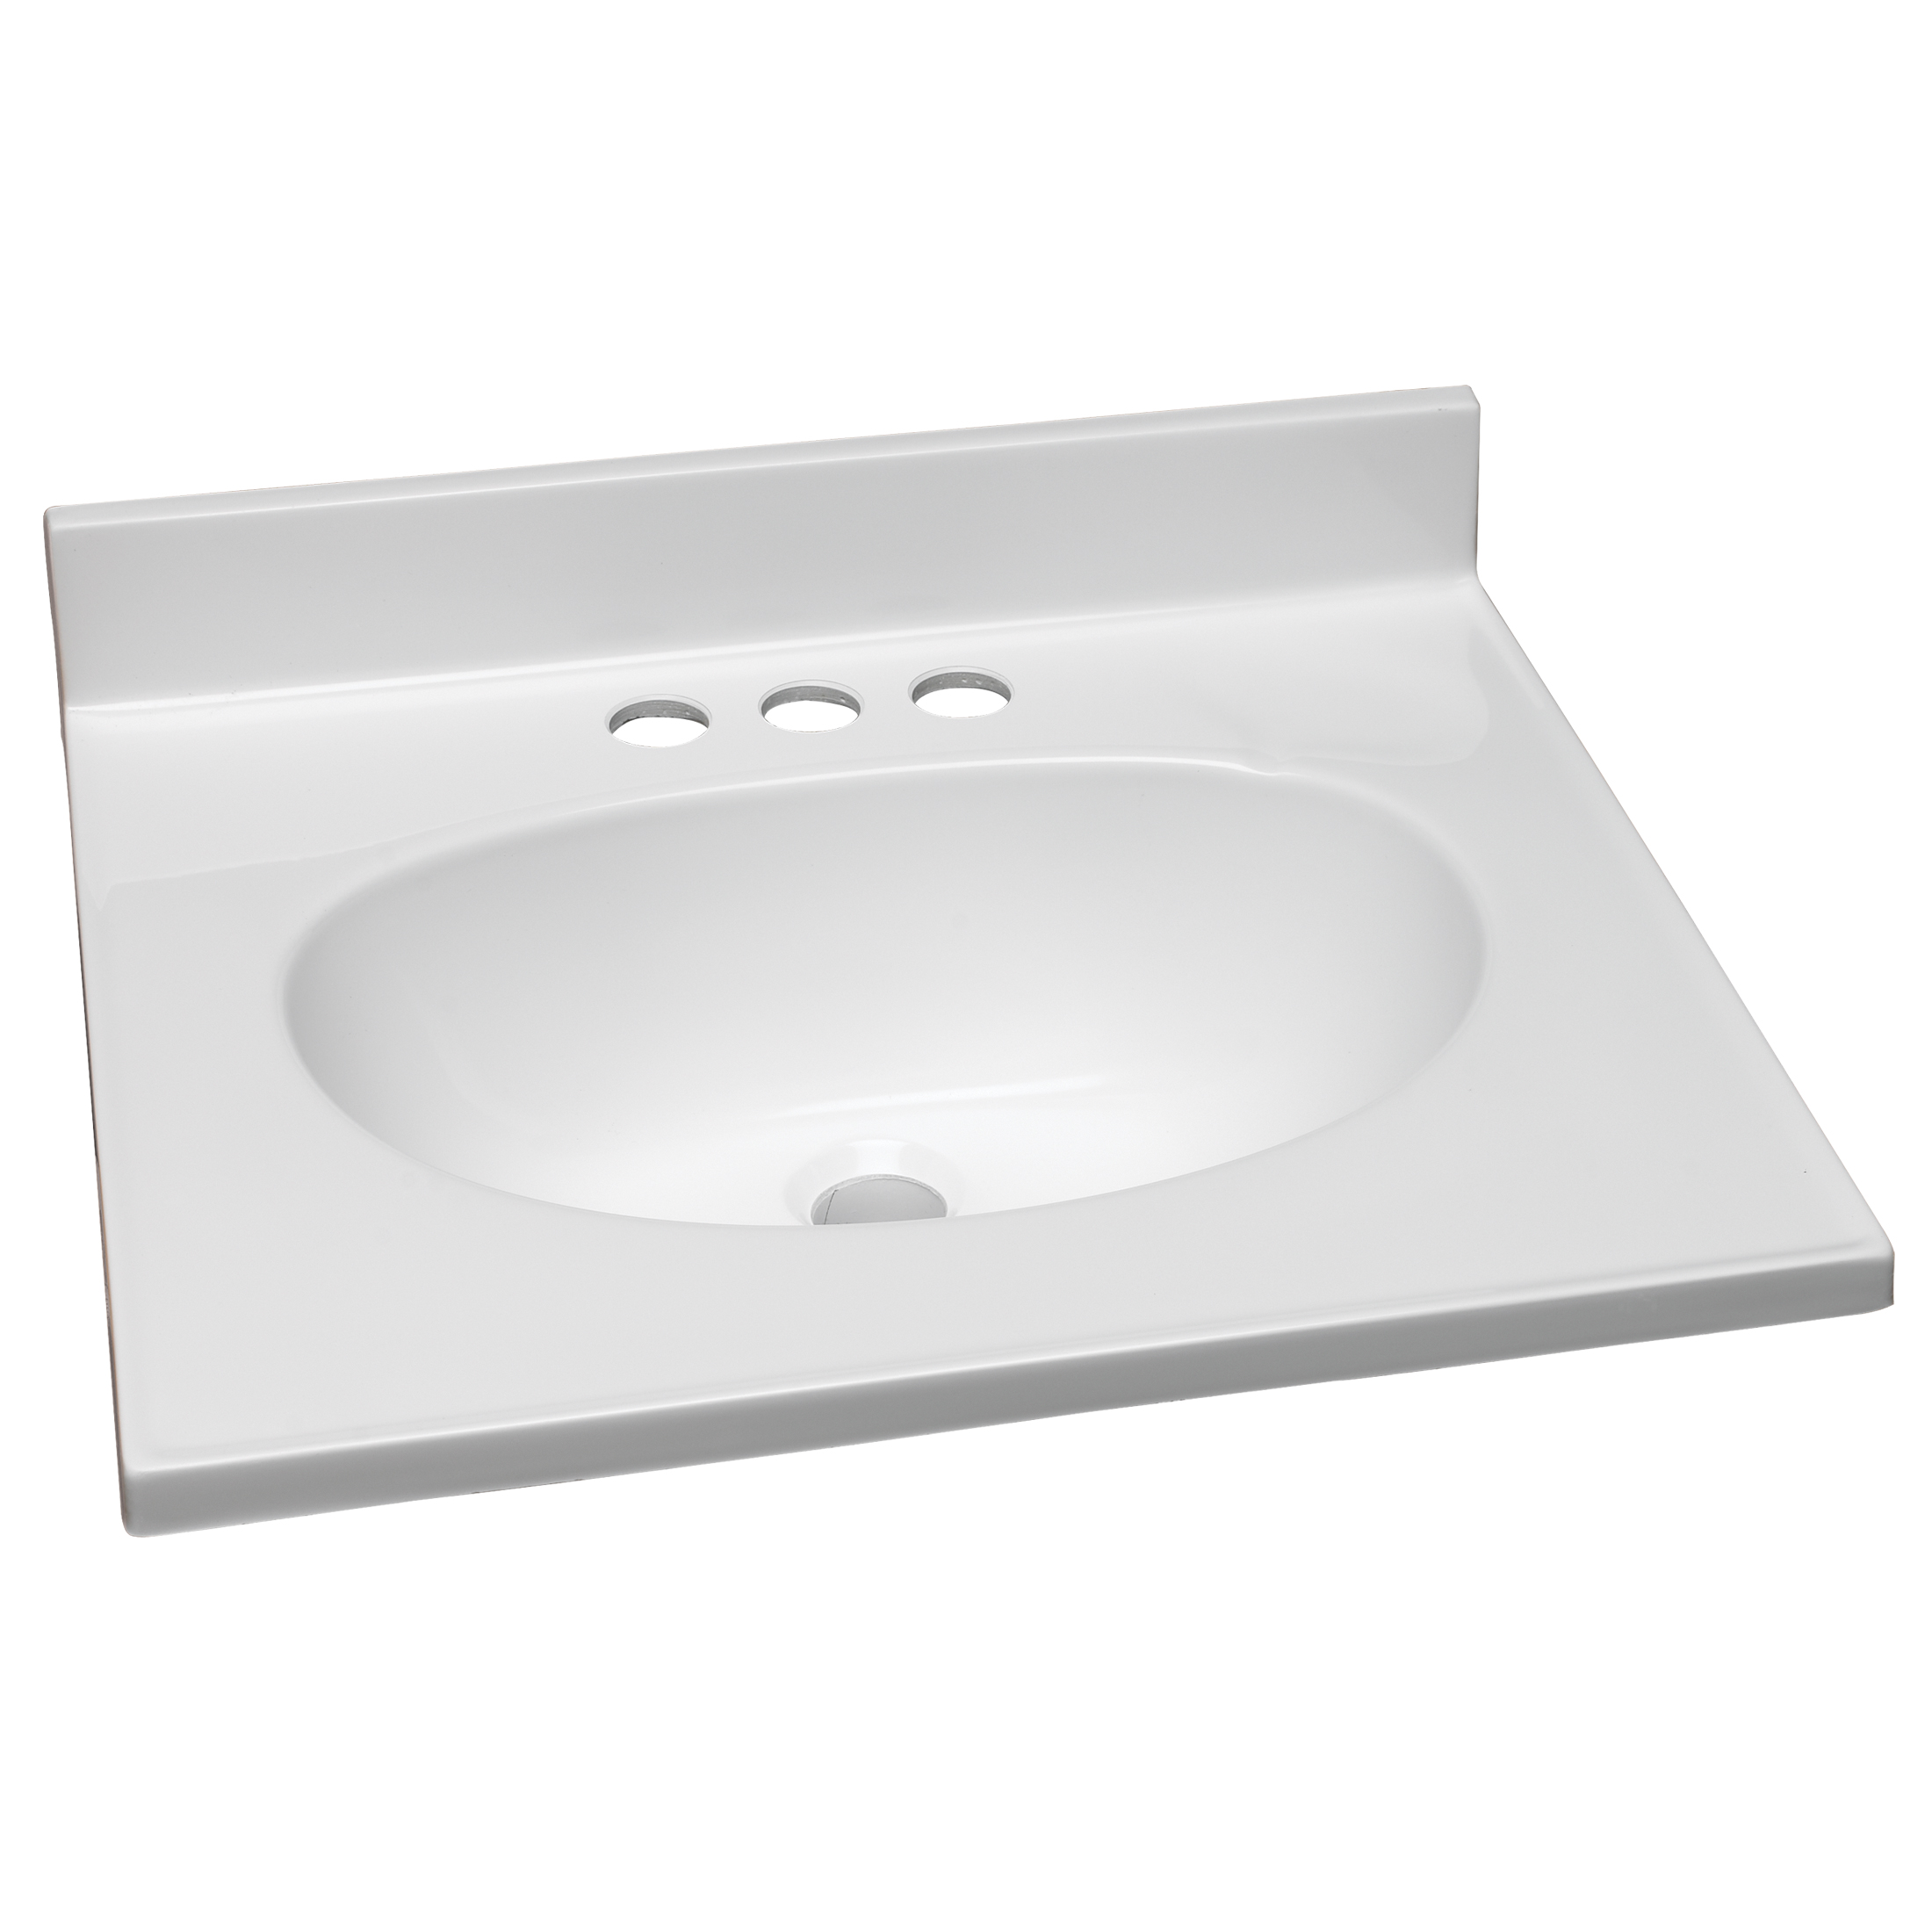 Design House 551242 19-Inch by 17-Inch Marble Vanity Top/Single Bowl, Solid White